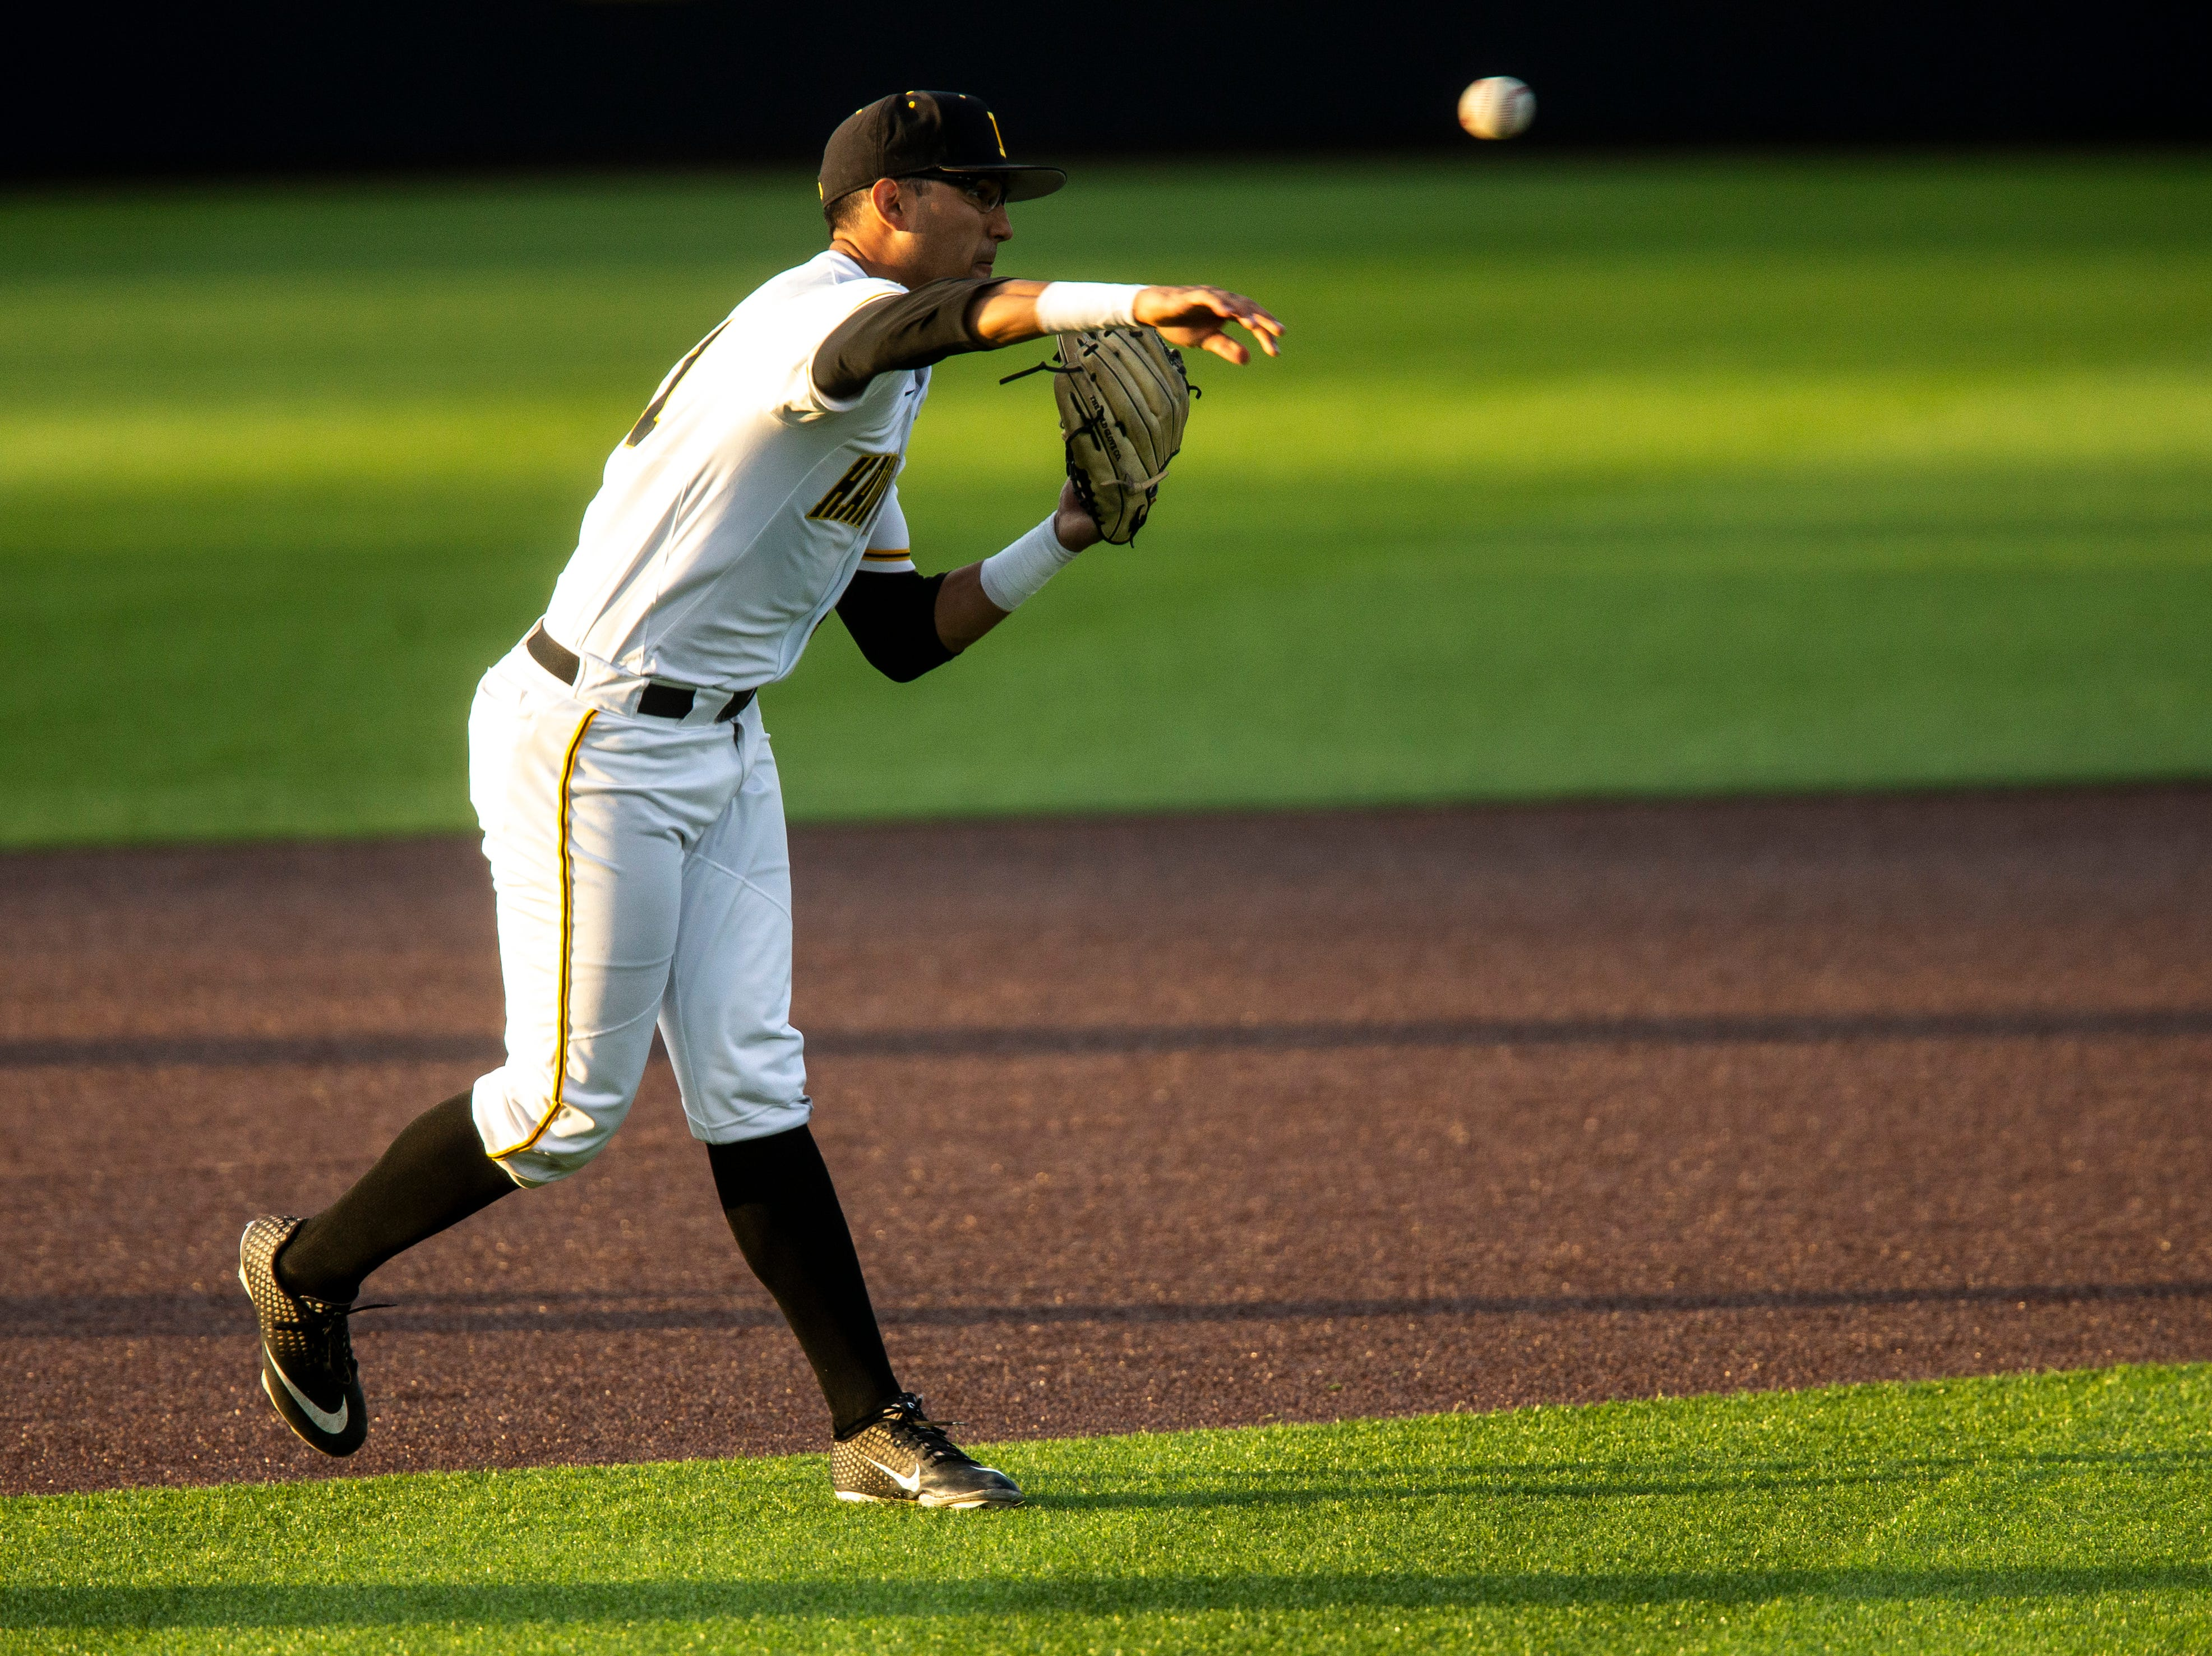 Iowa infielder Matthew Sosa (31) fields a ball during NCAA non conference baseball game, Friday, May 3, 2019, at Duane Banks Field in Iowa City, Iowa.